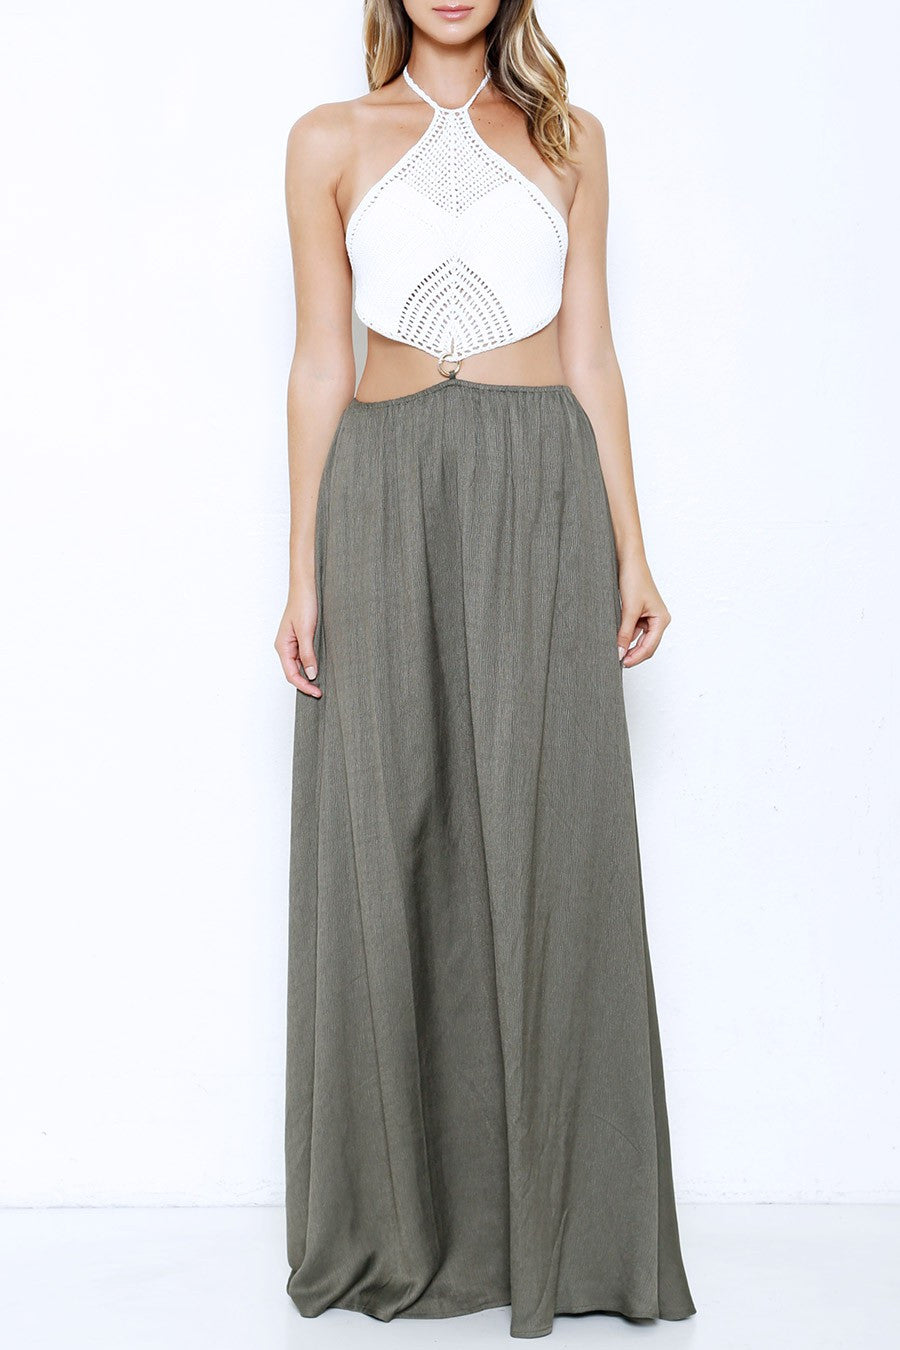 Indra Maxi Dress